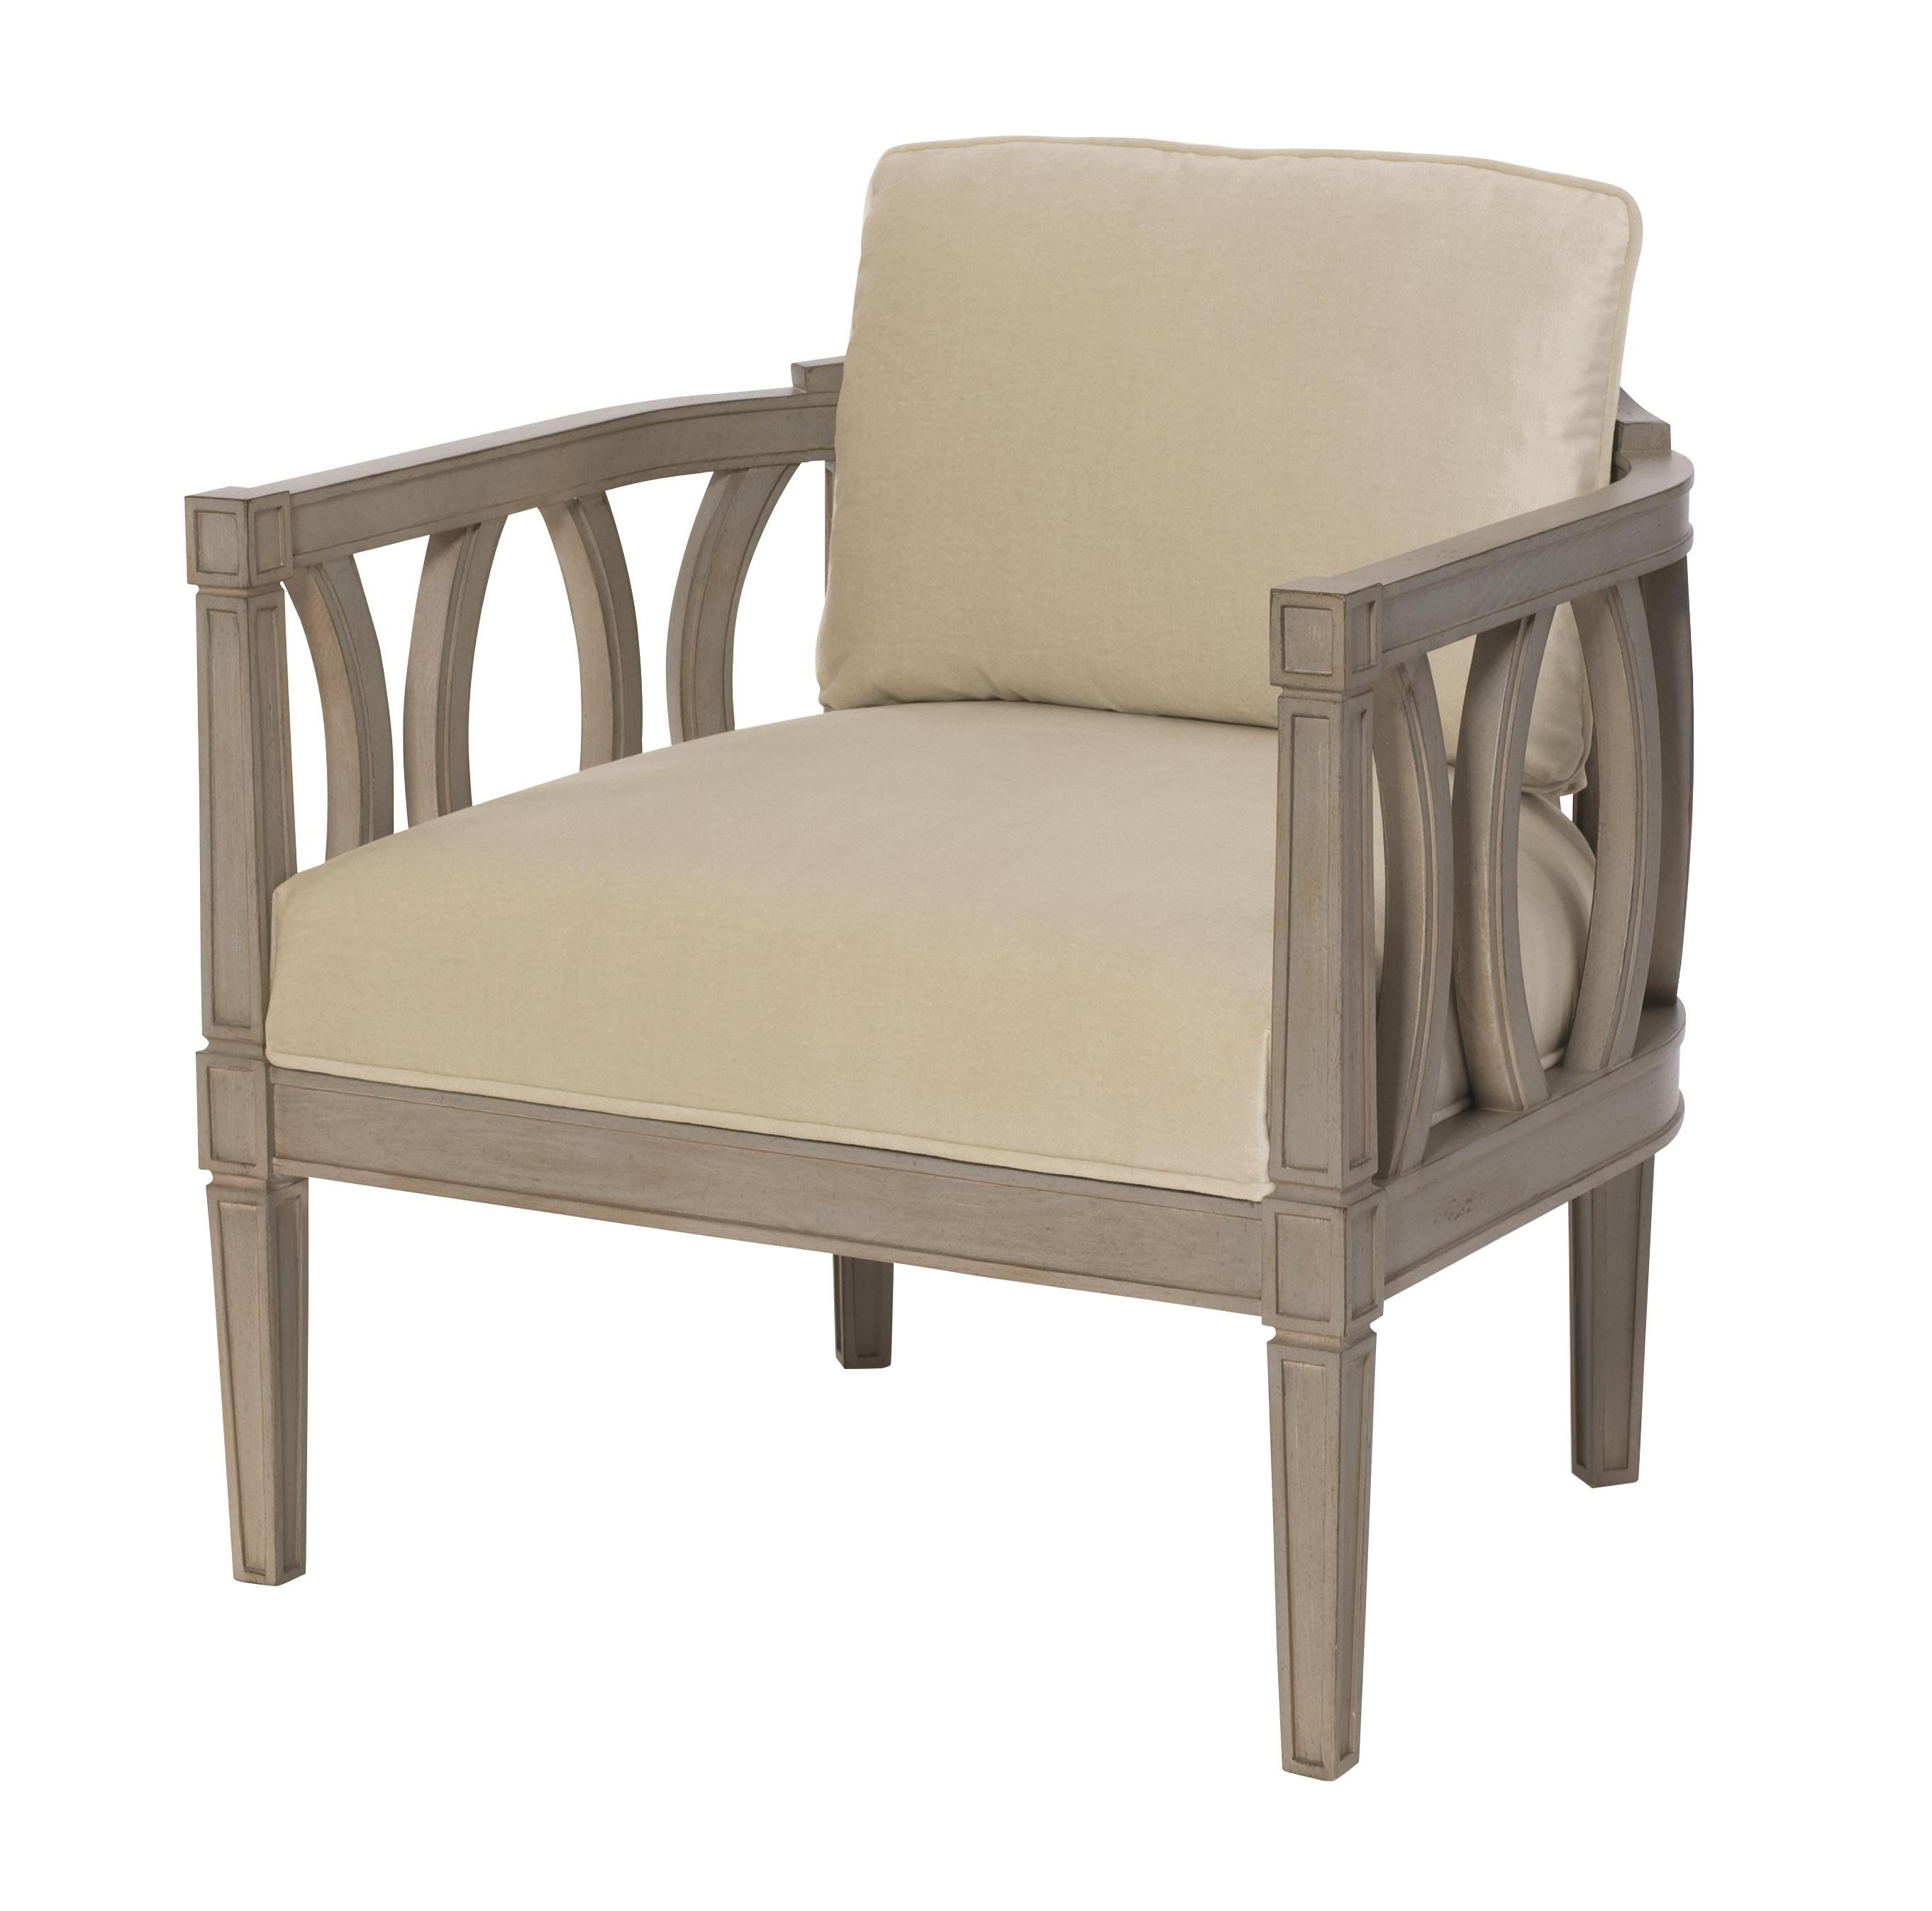 Bernhardt Ansley Upholstered Chair - Item Number: B8003-2838-002